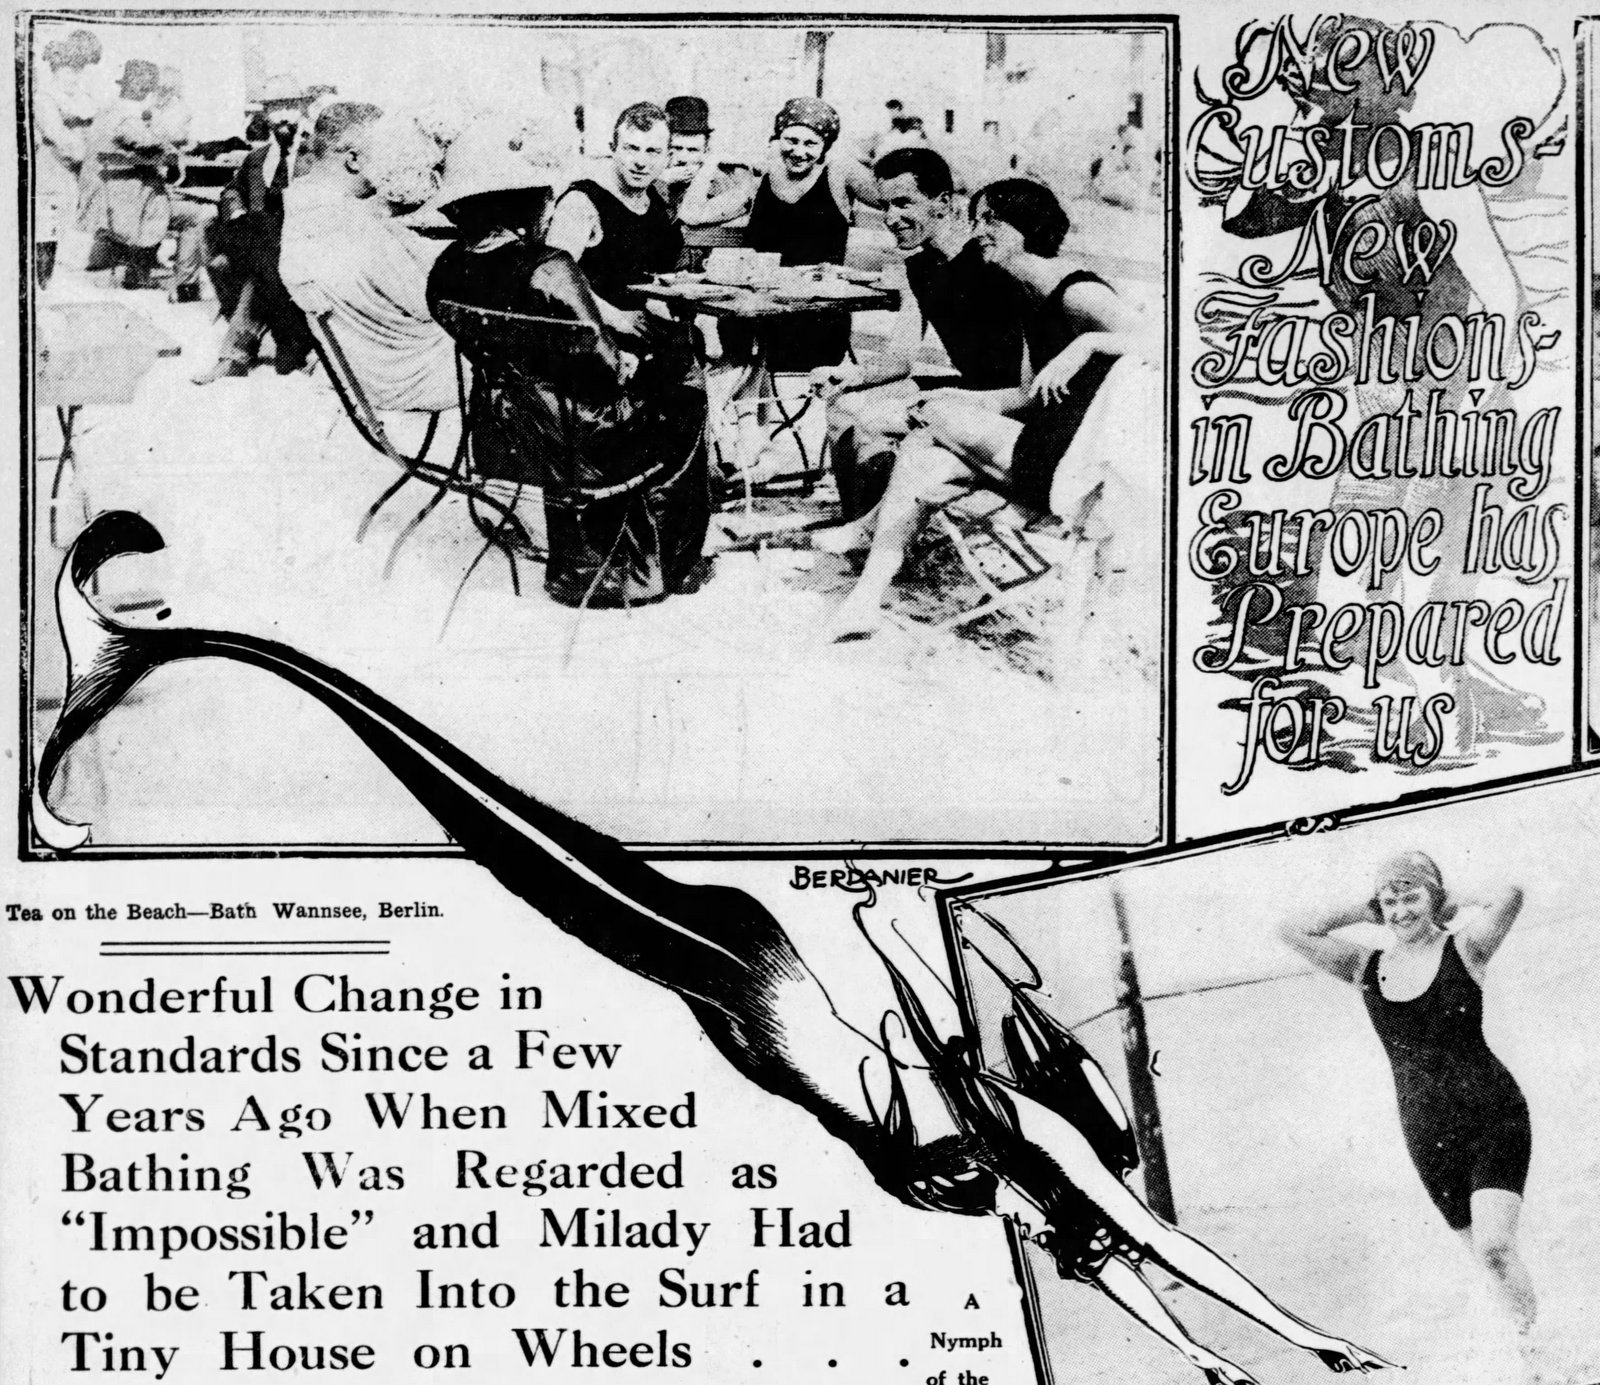 Vintage swimwear and modesty Mixed bathing comes to America (1913)